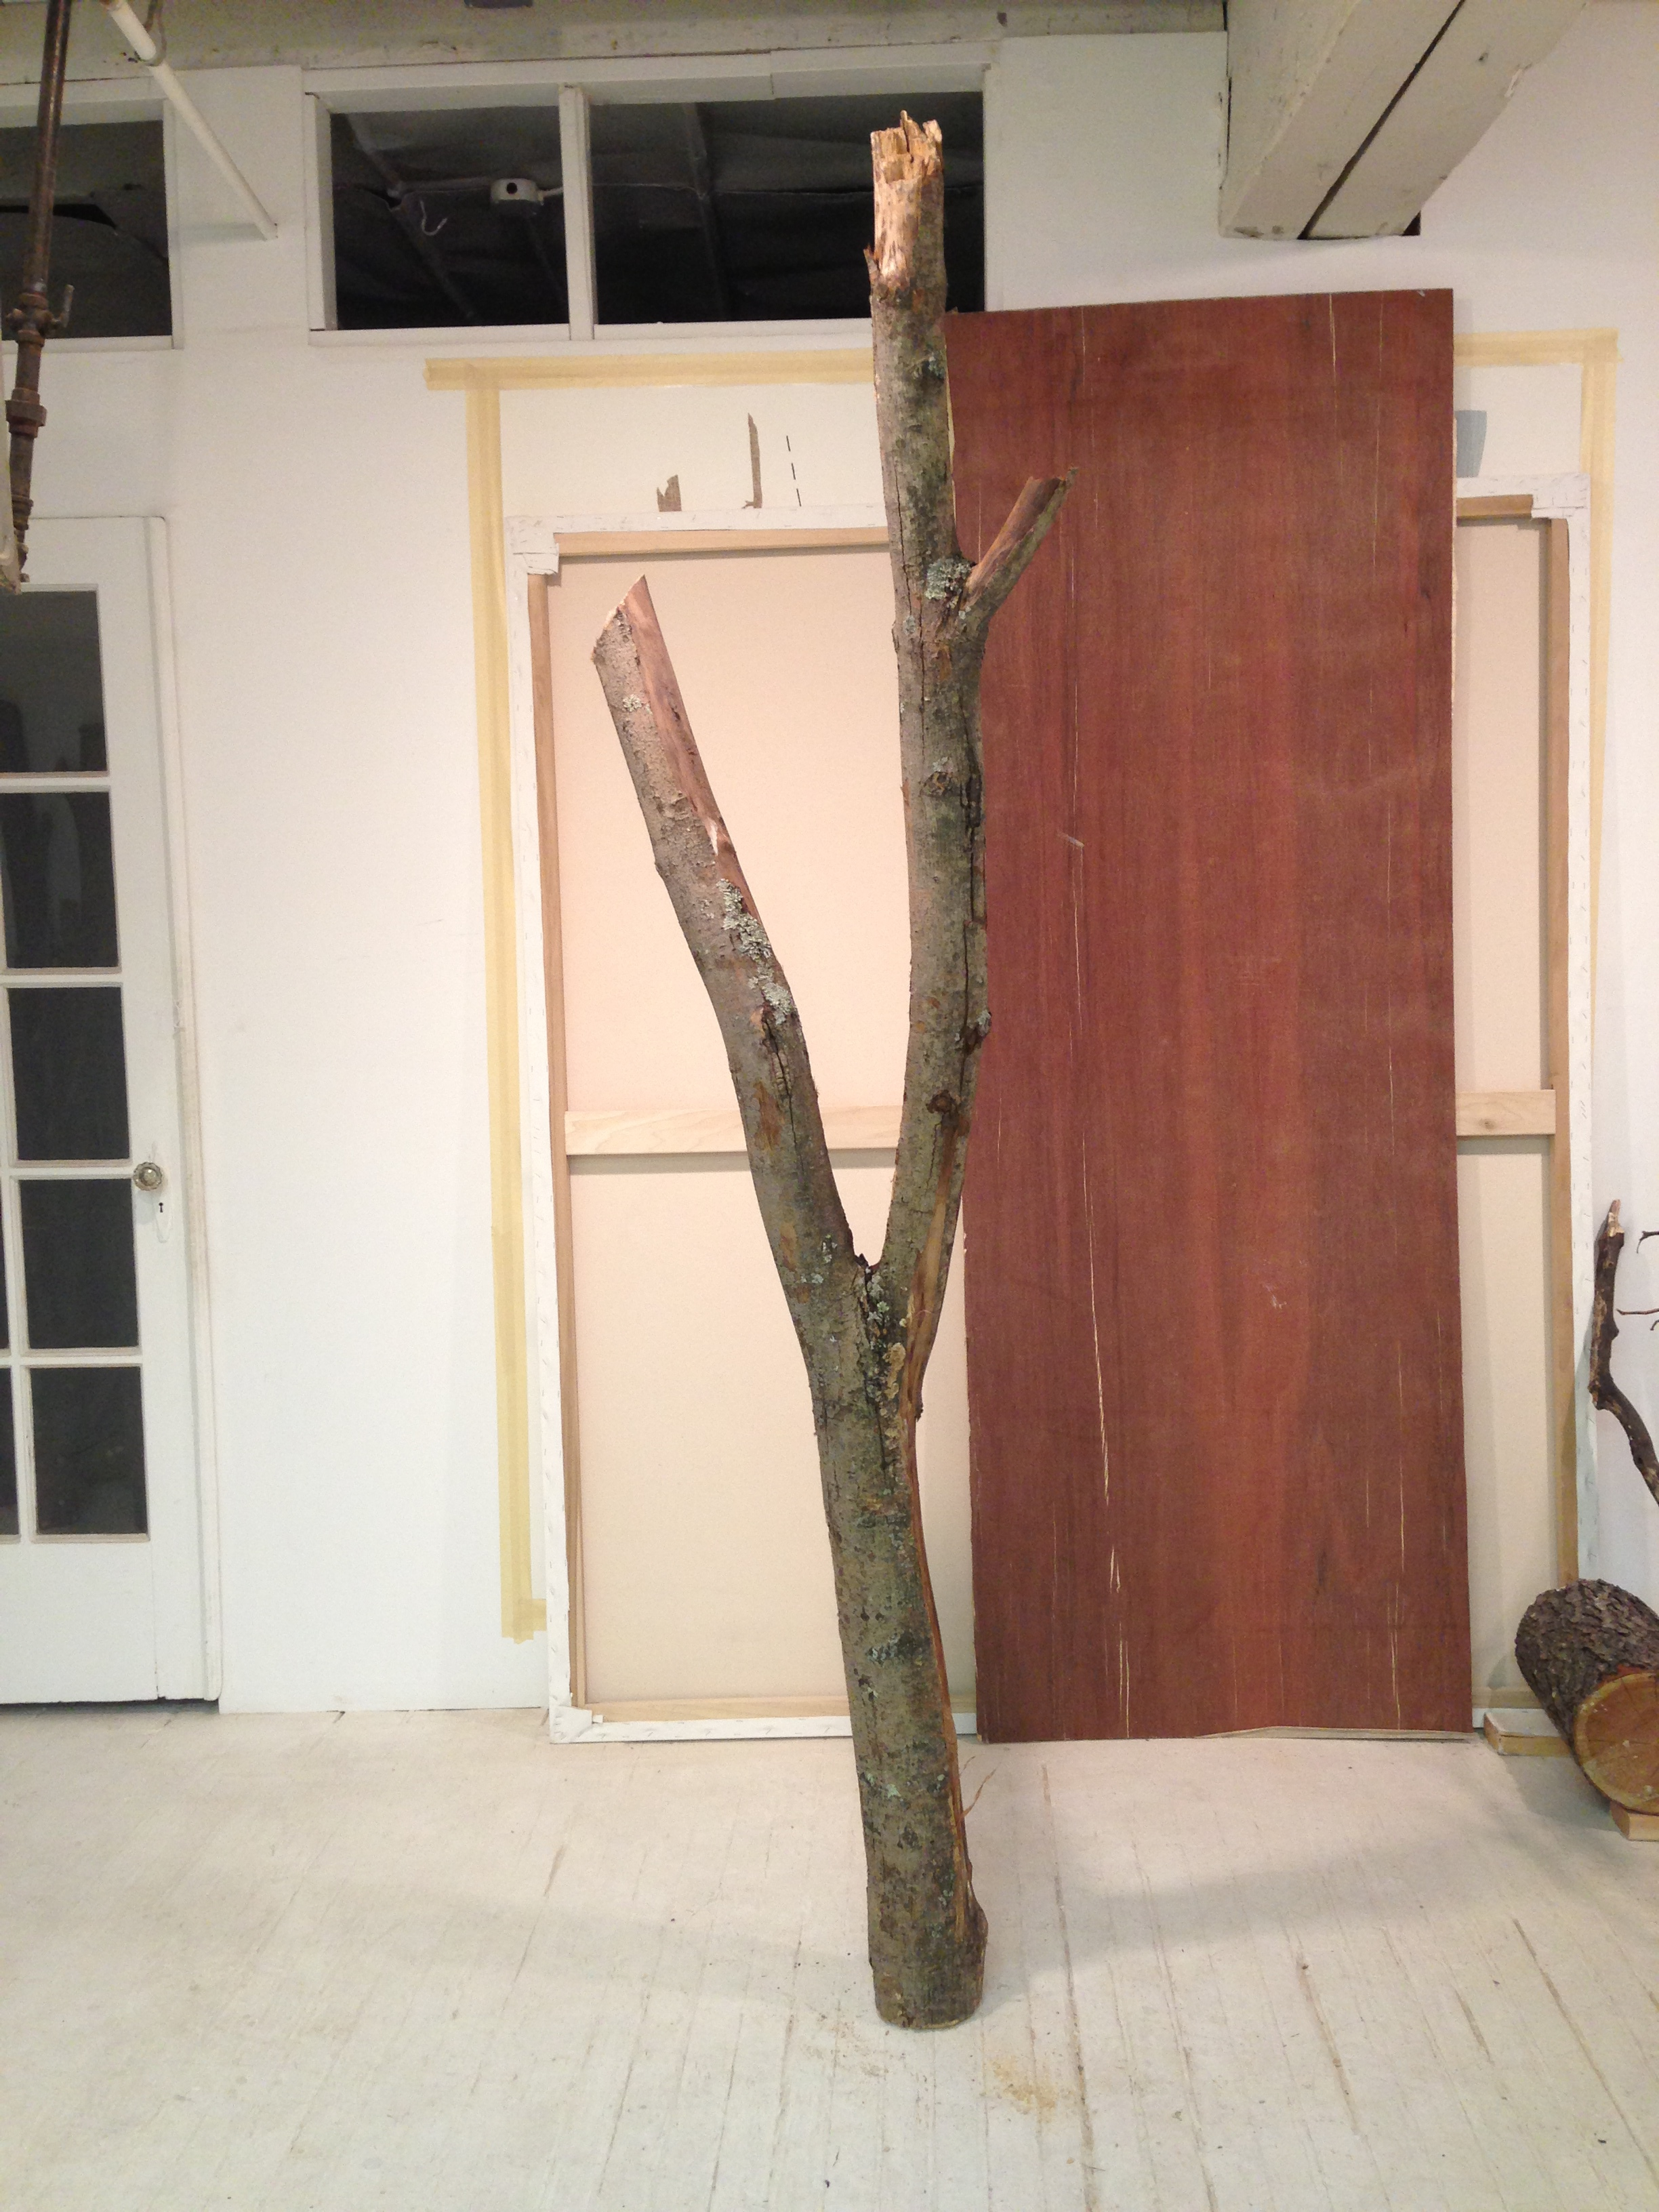 Anchored tree in studio